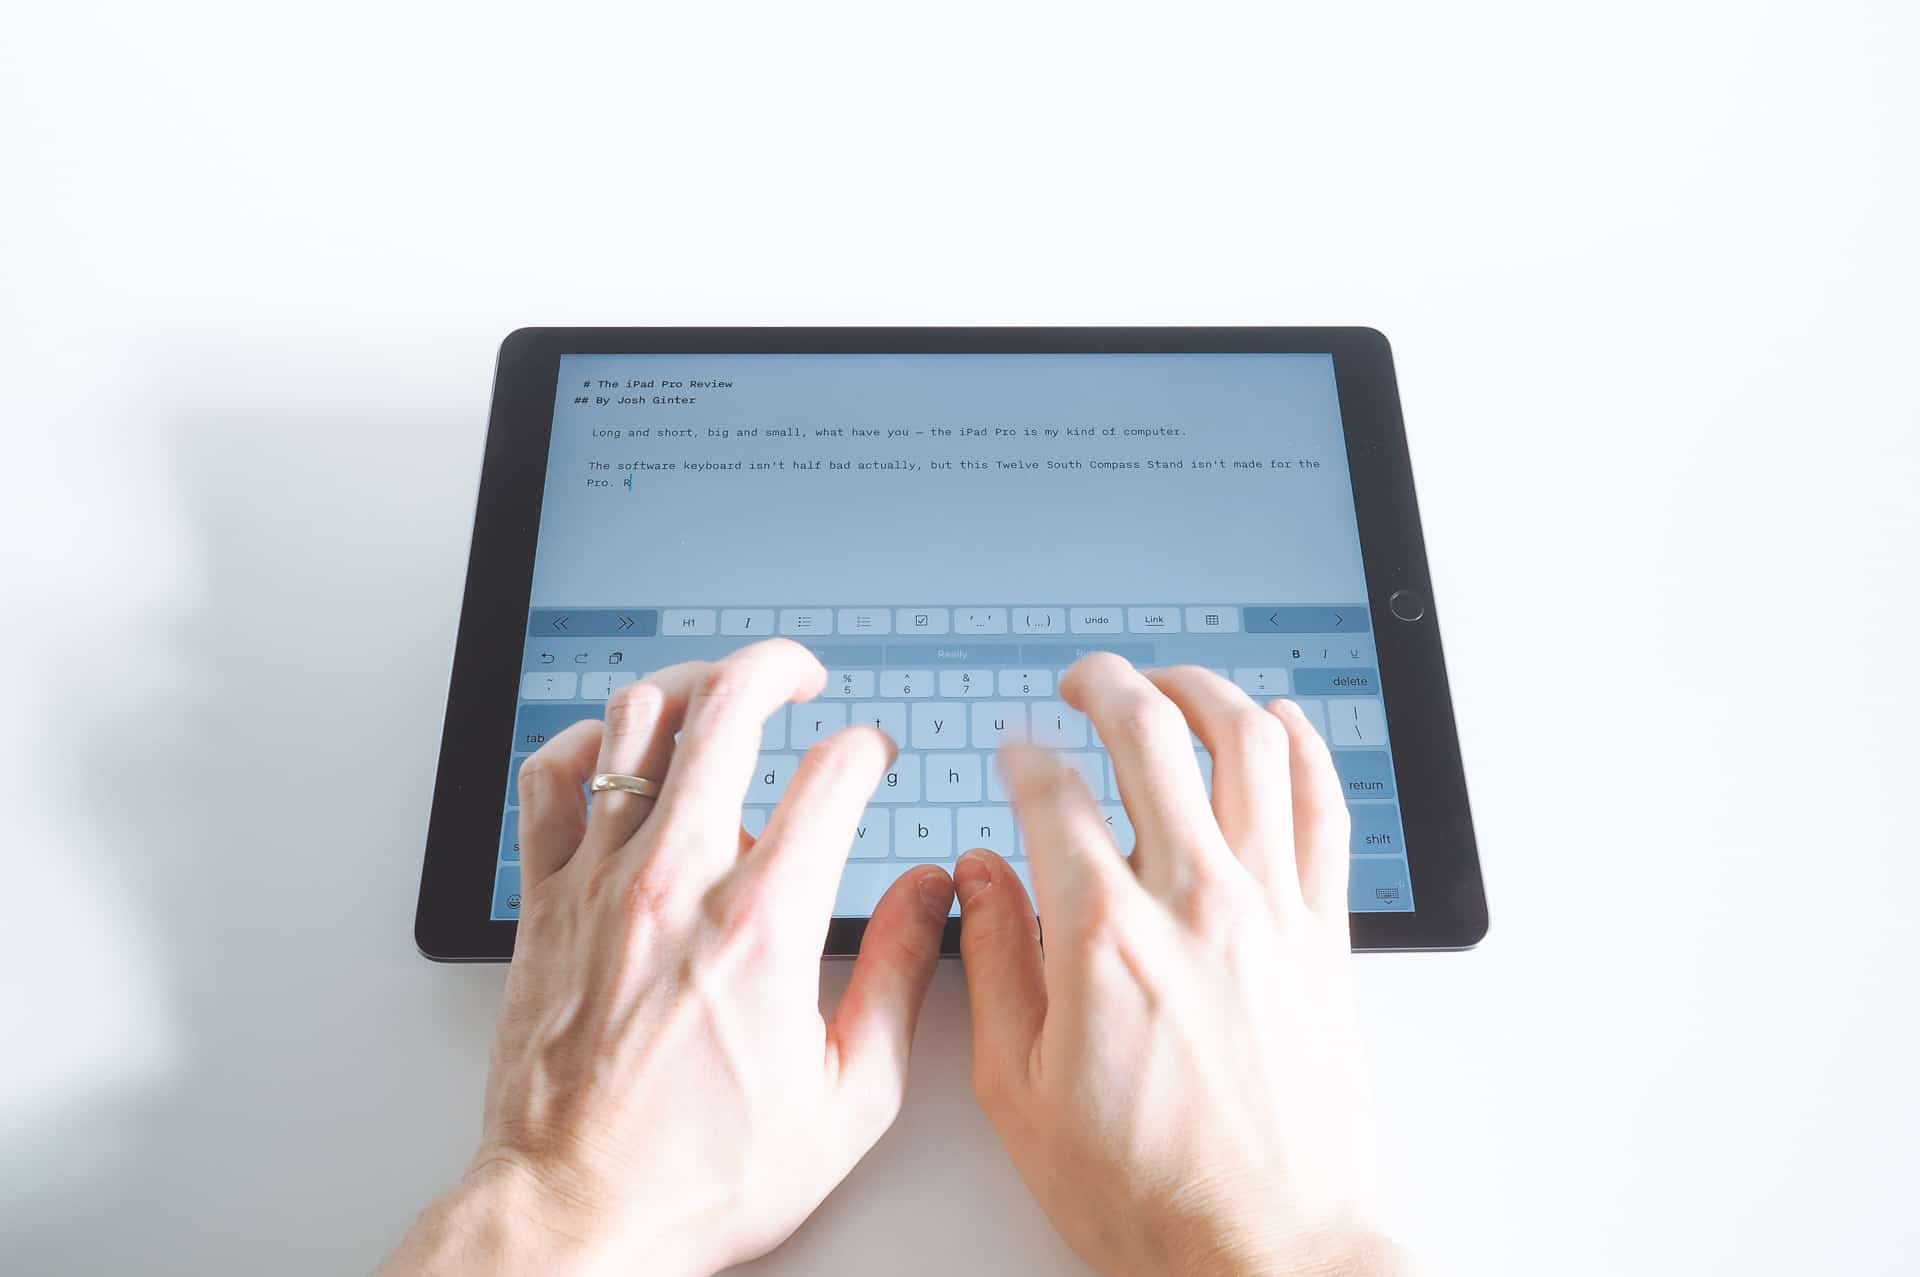 write essay on ipad Learn how to write an essay on 160 essay topics with essay examples essays on persuasive essay topics, argumentative essay topics and many more are now made easy for you with this intuitive, useful and simple to use essay writing app.